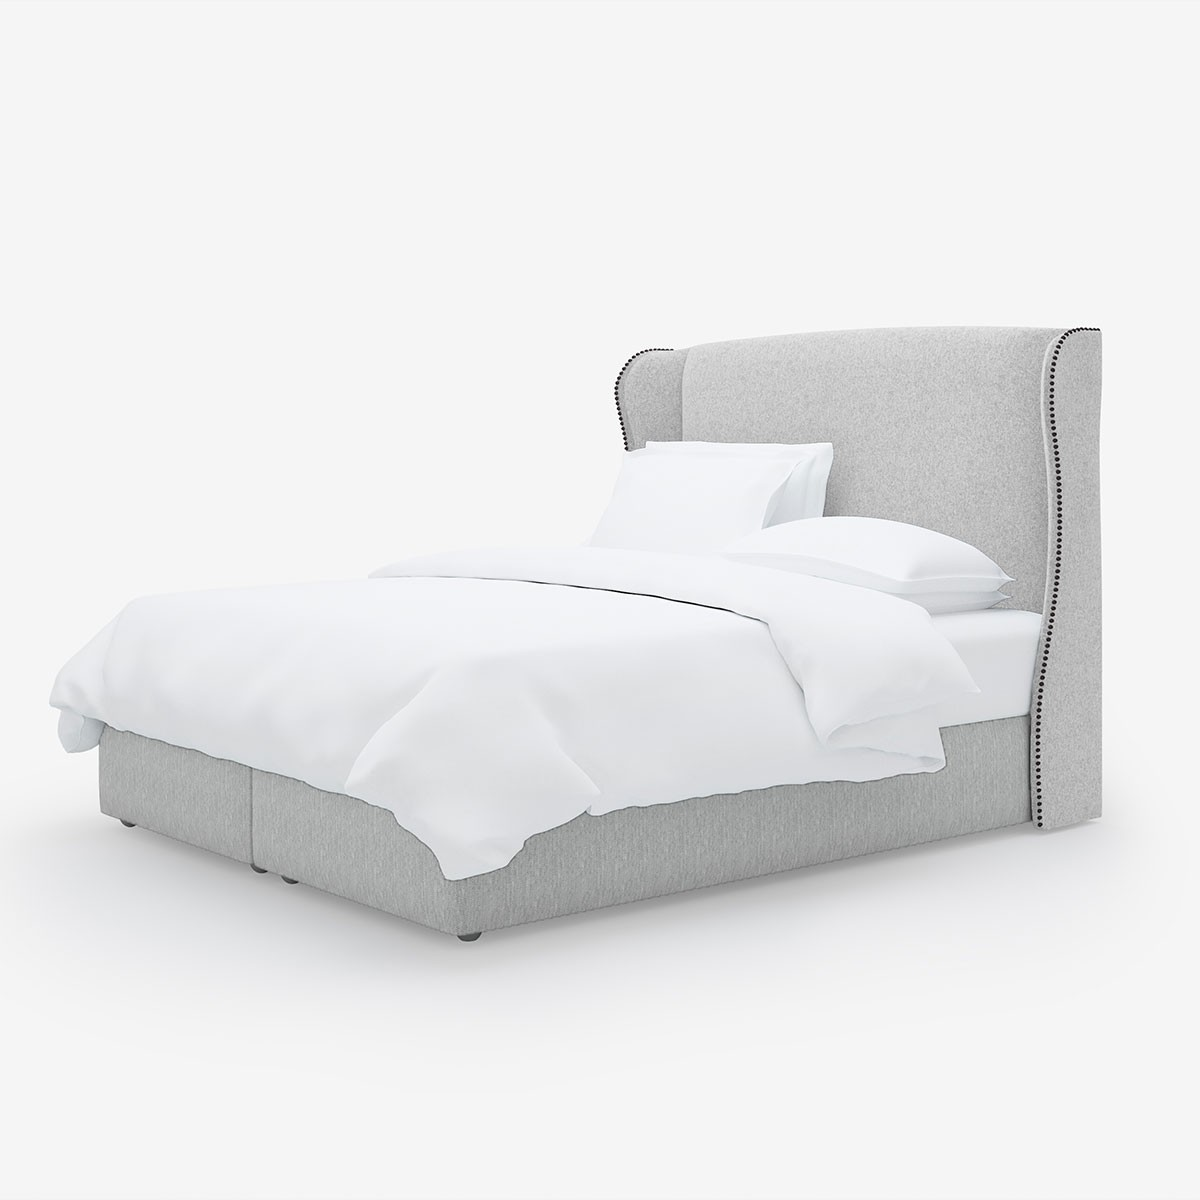 Image shows Simply Winged Super King Headboard in Wool Felt Soft Grey